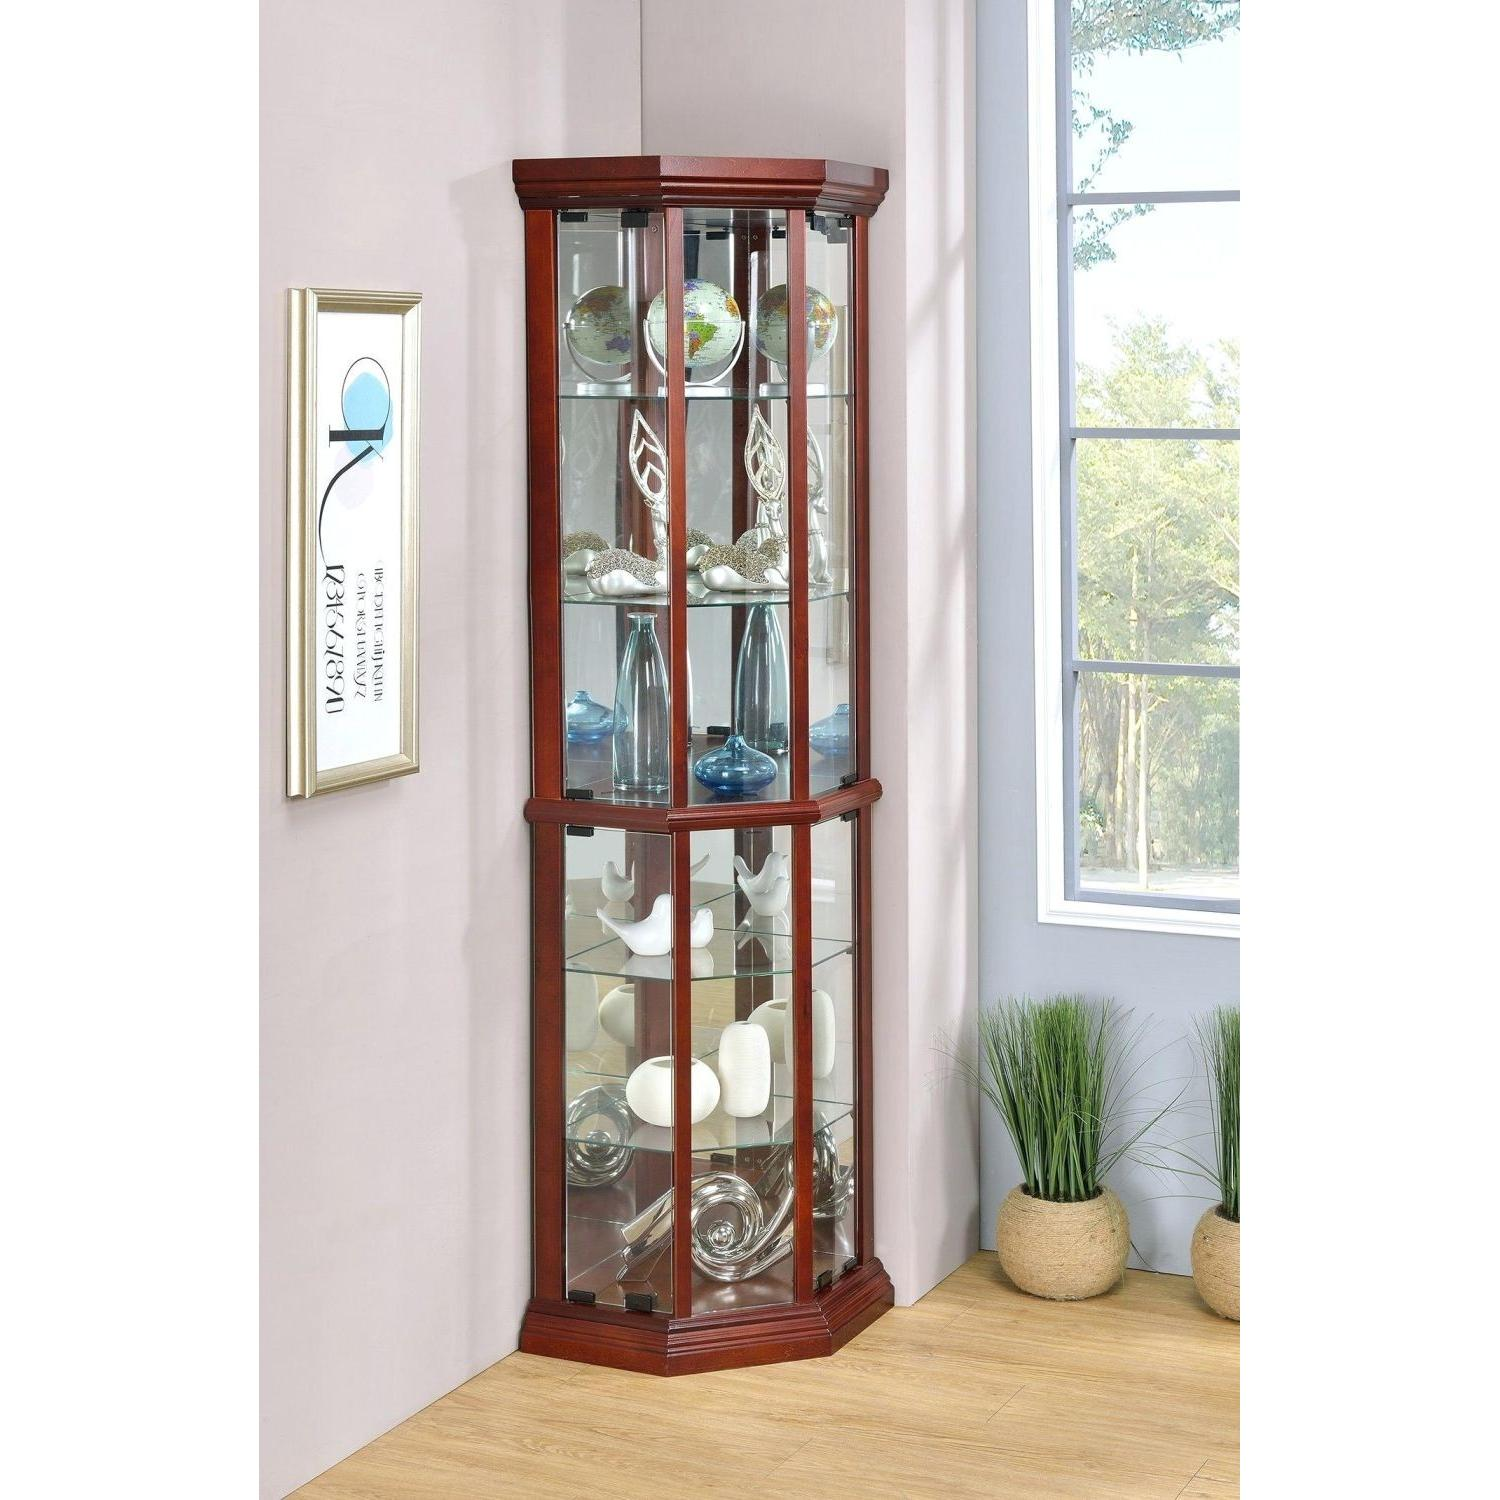 Curio Cabinet in Warm Brown w/ Glass Panels - image-4